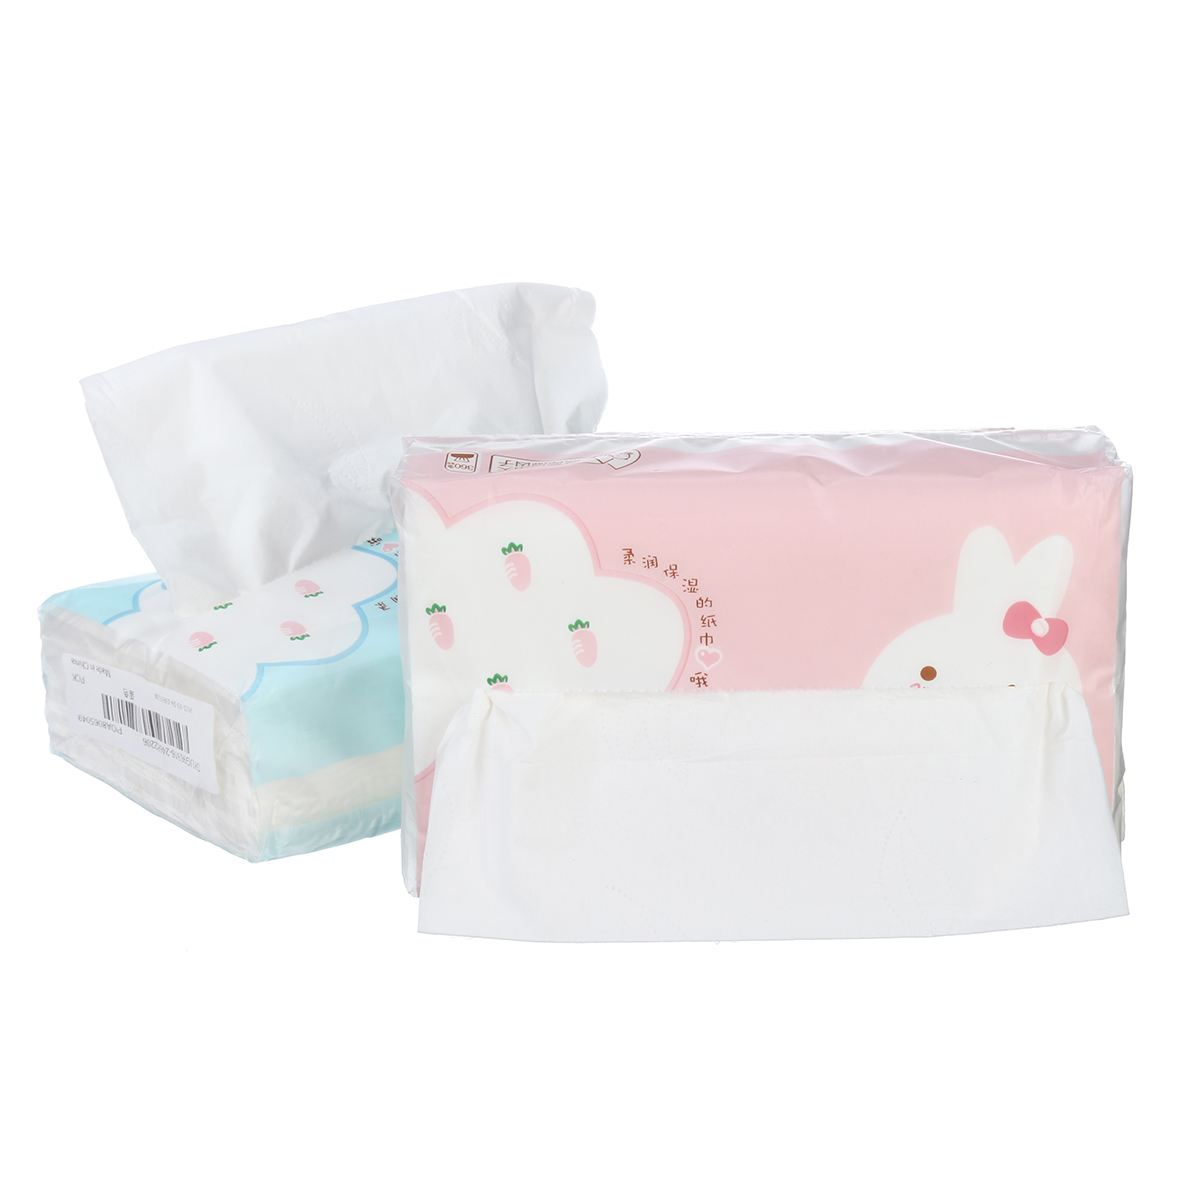 HOT 120 Sheets Drawable Facial Tissue Native Wood Pulp 3 layers Thickened MOISTURIZING 140mmx180mm Tissue